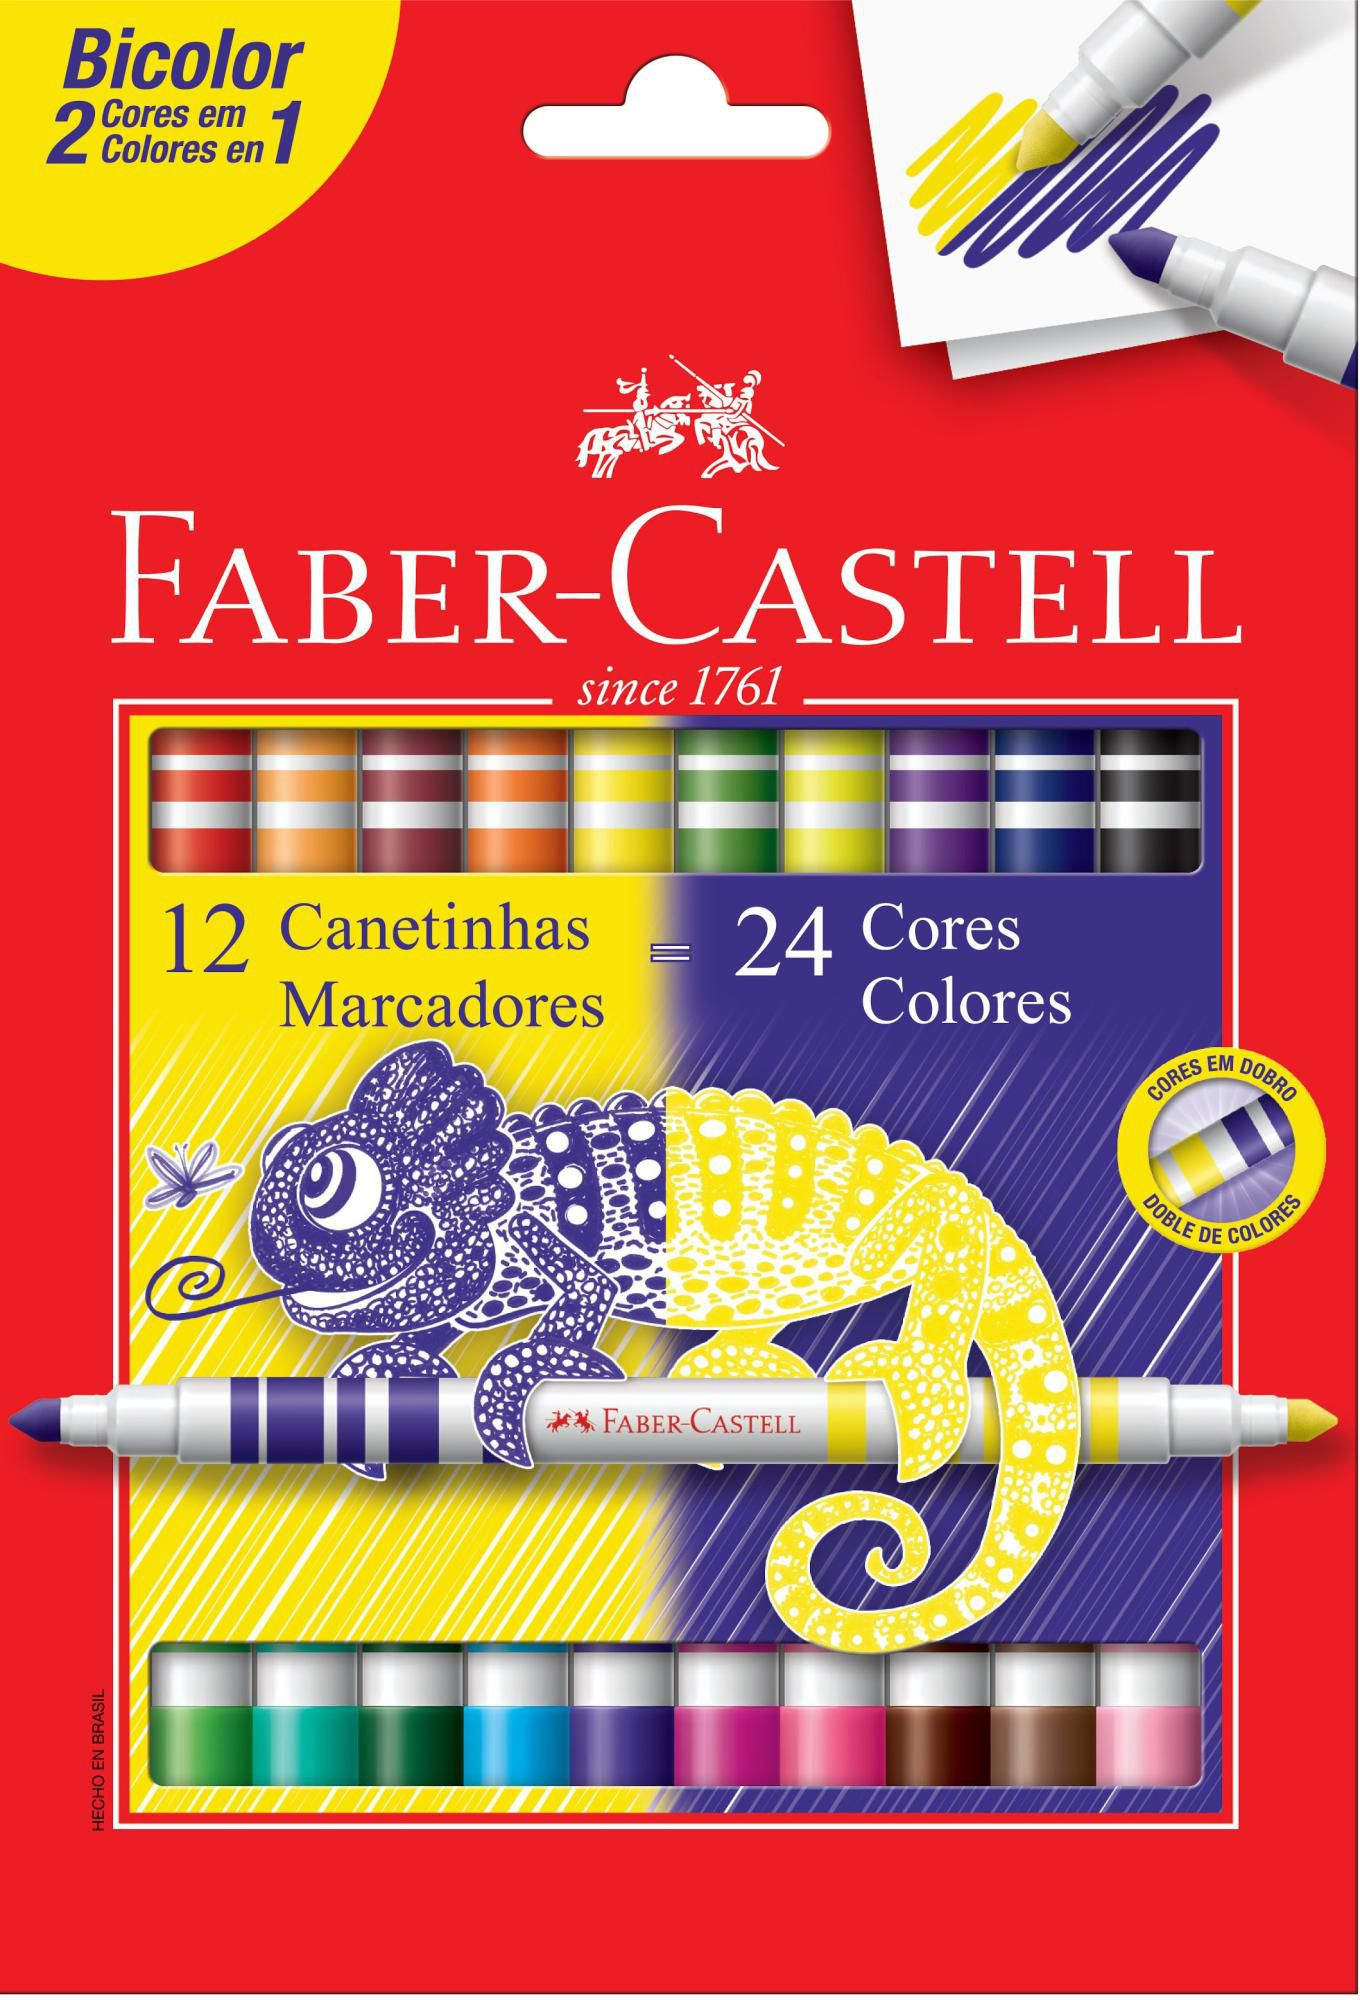 Canetinha Bicolor Faber Castell 24 Cores